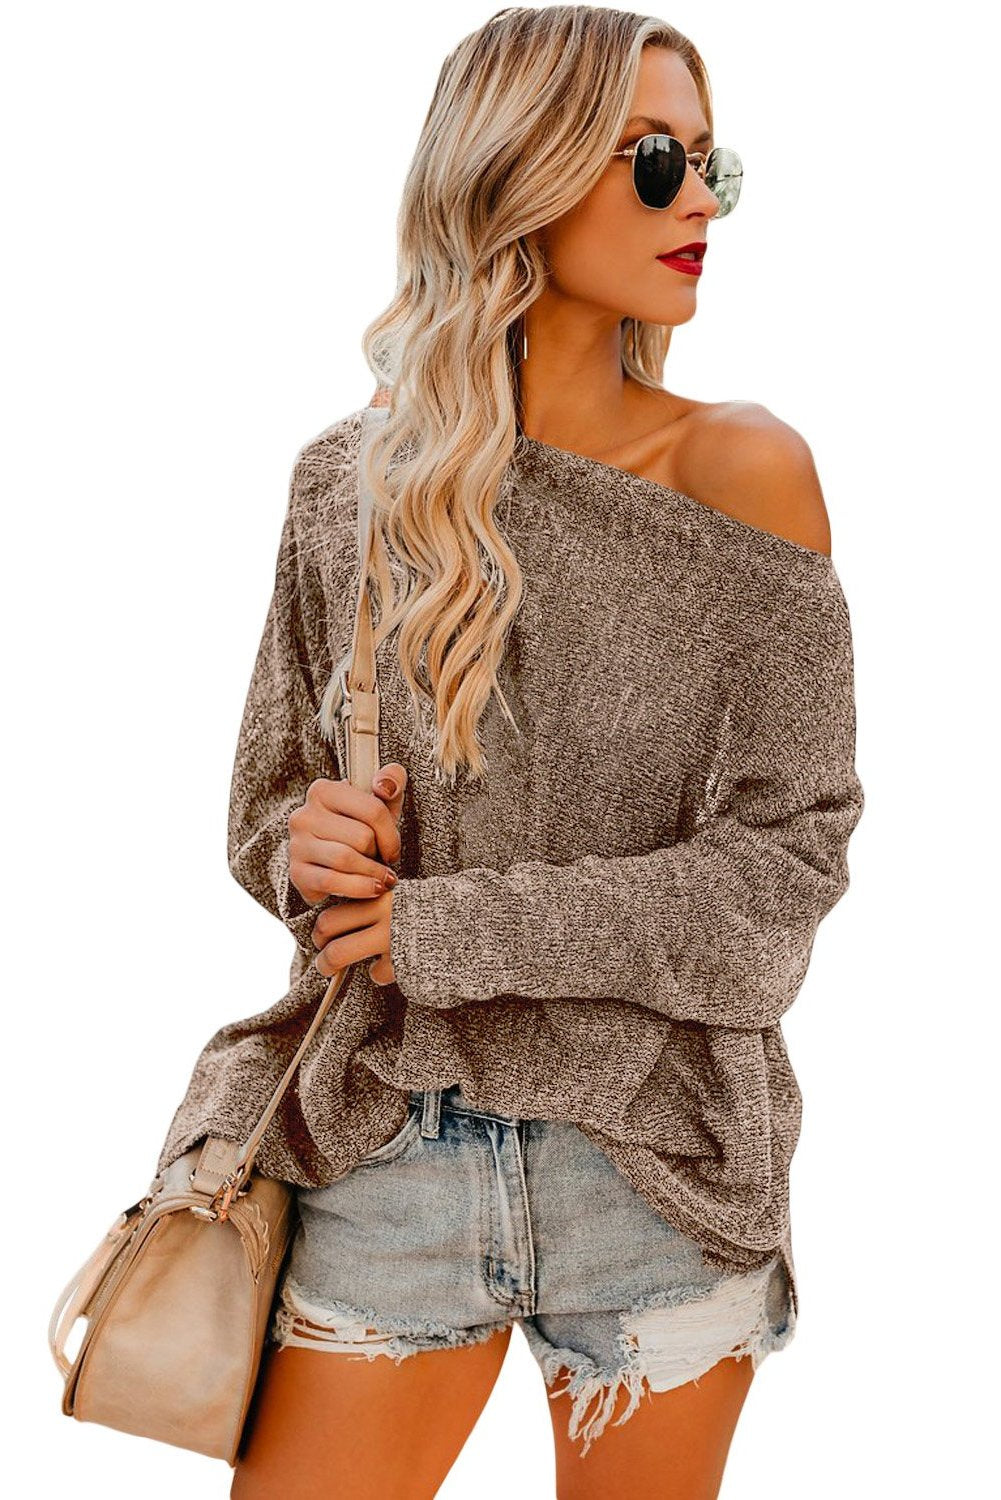 Simple Styling Her Fashion Brown Drop Shoulder Lightweight Knitwear